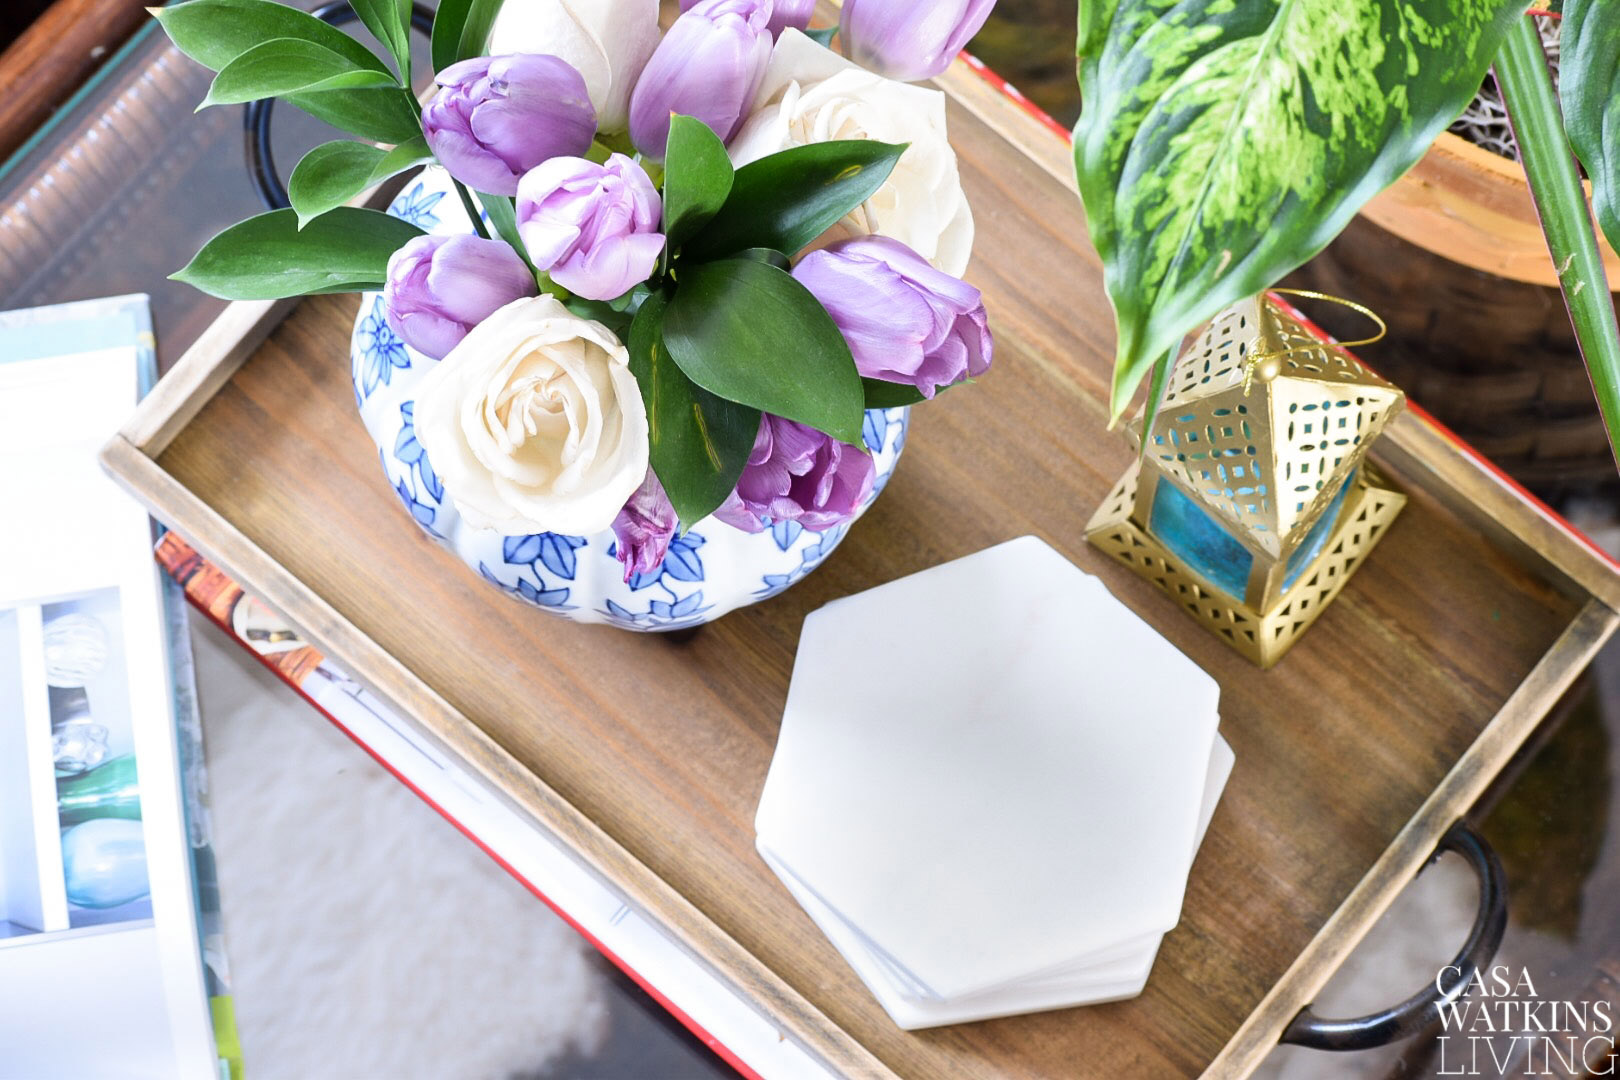 purple tulips and roses are 15 days old and still looking great on this wooden tray vignette